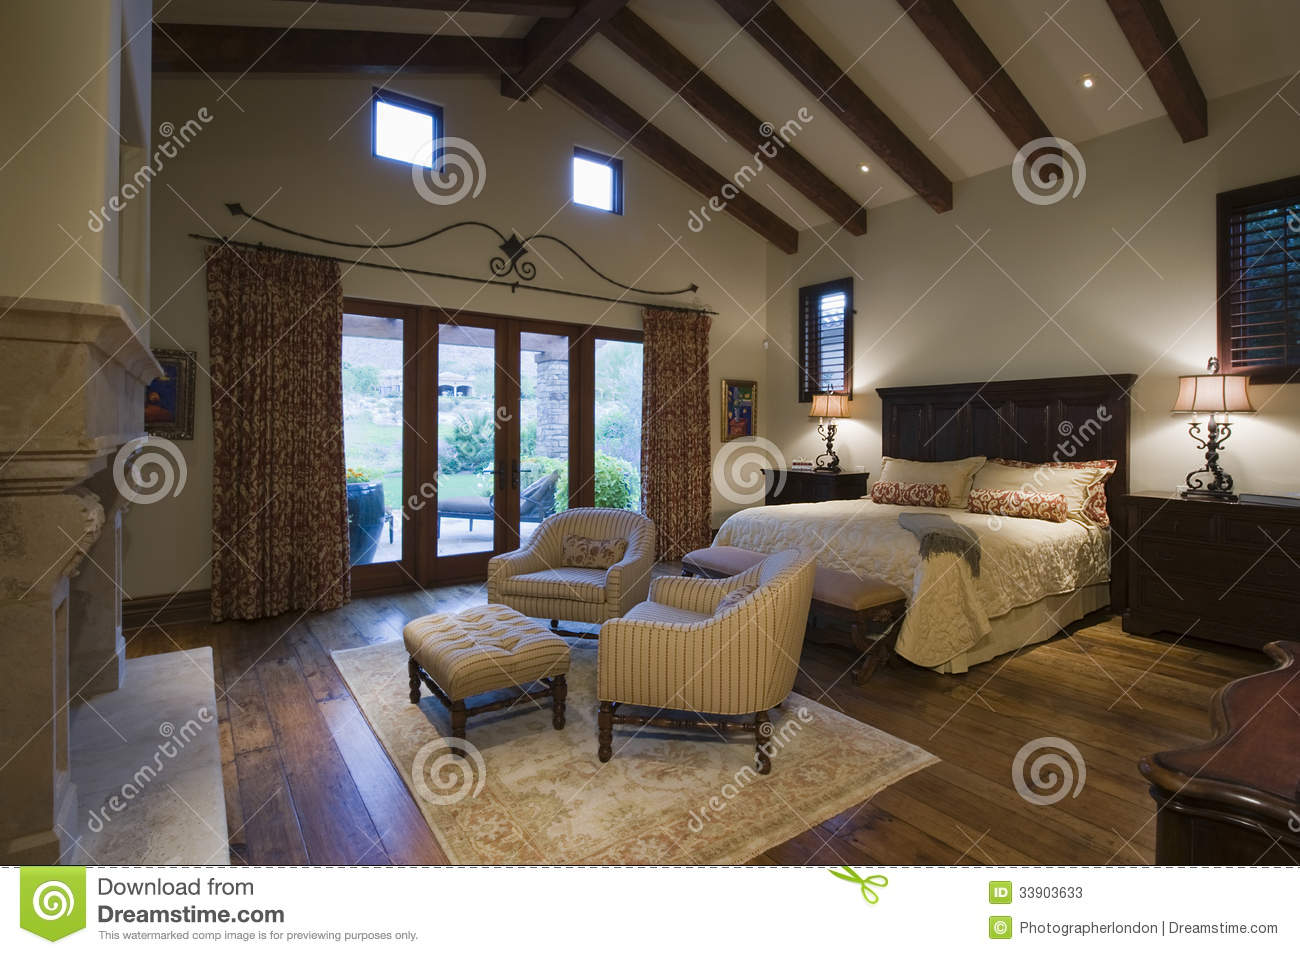 Download Bedroom With Seating Area At Home Stock Image   Image Of Hacienda,  Armchair: